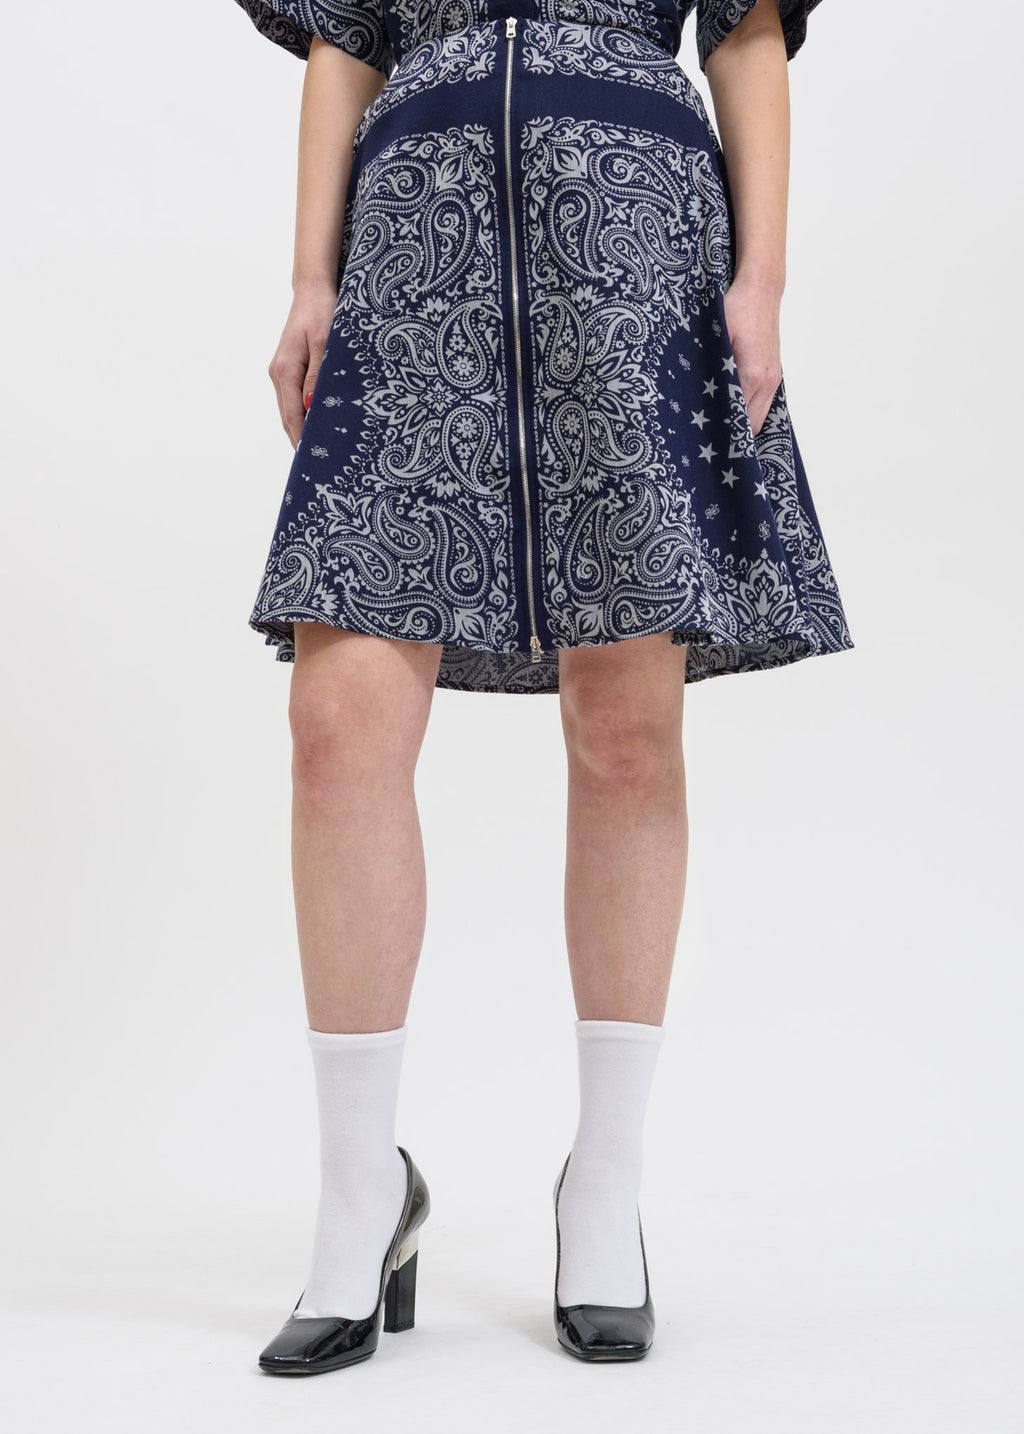 Blue Bandana Steps Skirt